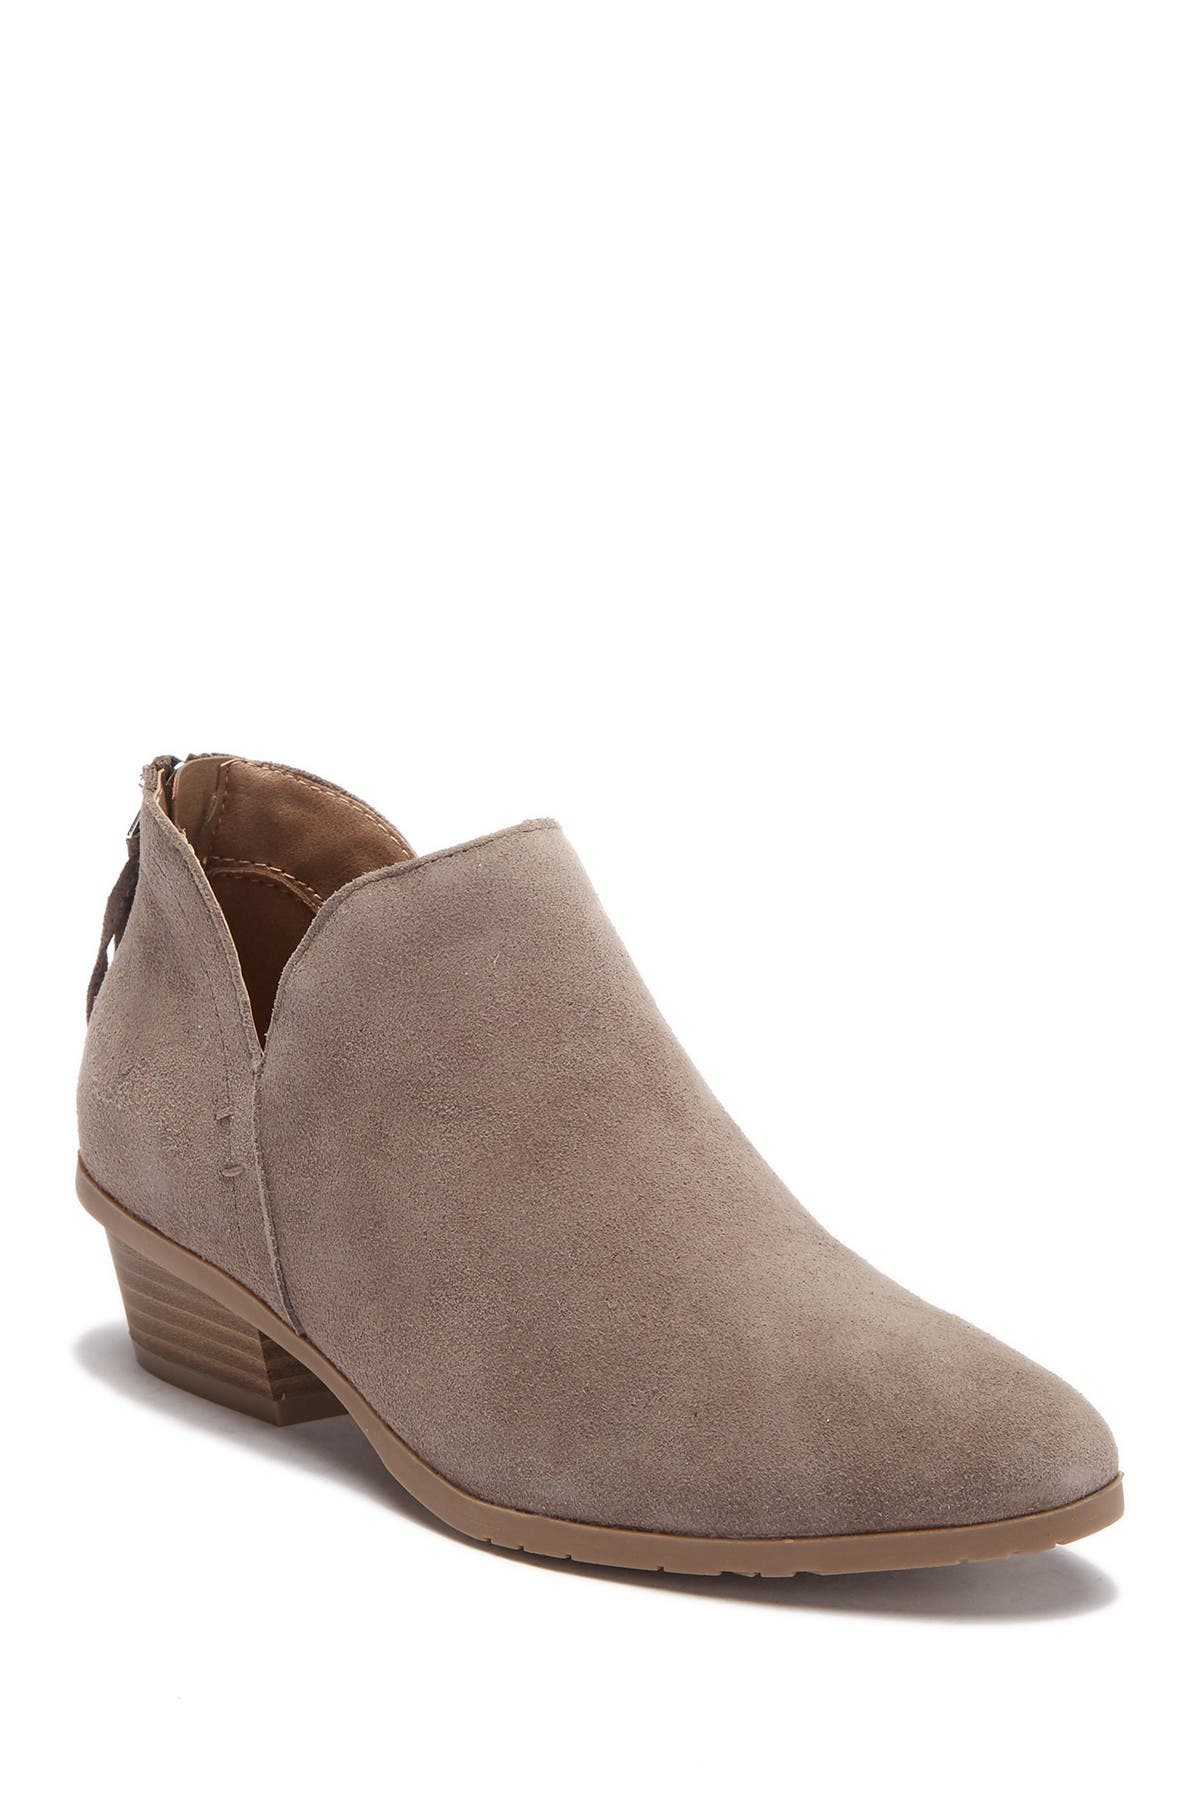 Image of Kenneth Cole Reaction Side Way Suede Ankle Bootie